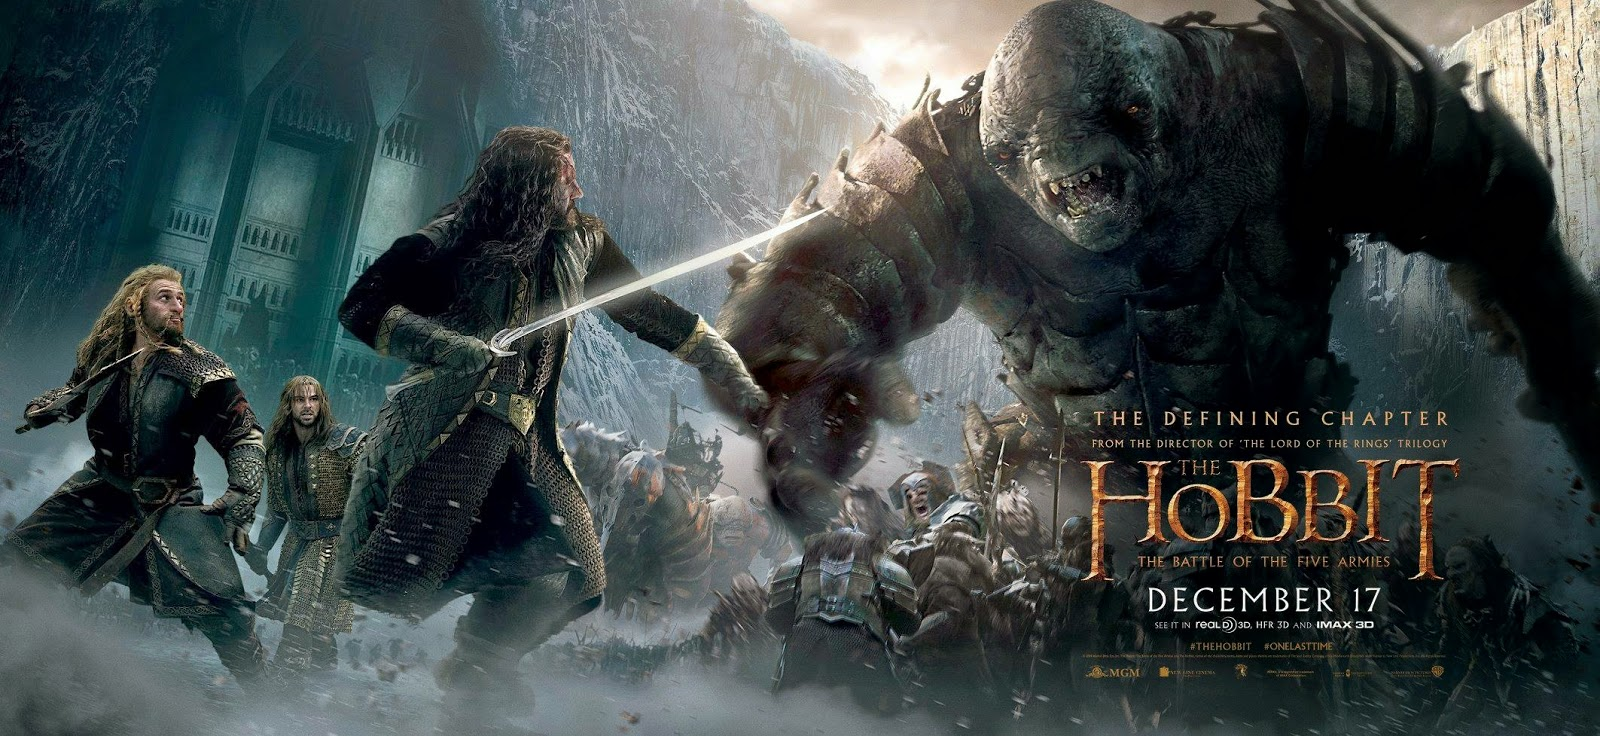 Download The Hobbit The Desolation of Smaug wallpaper